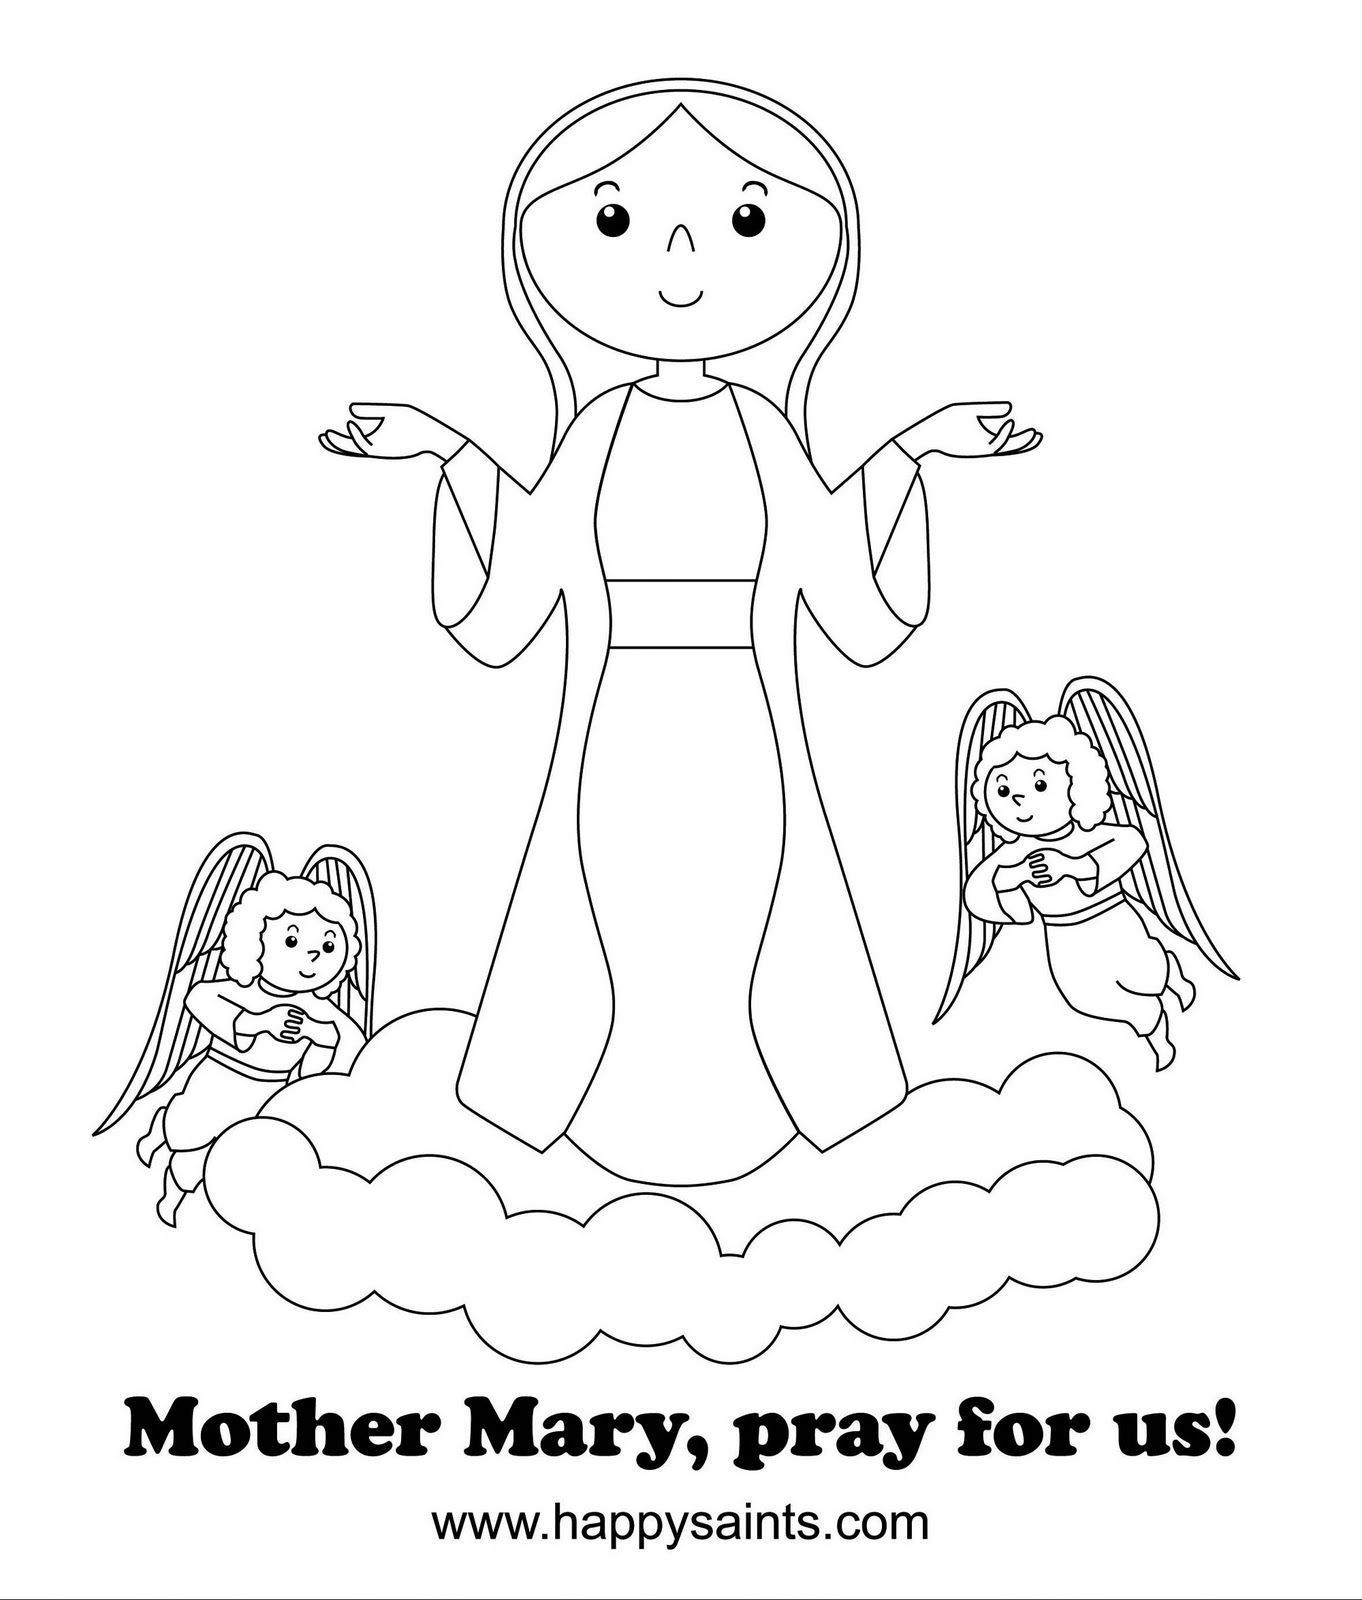 Pin by Megan U on All Saints Party Catholic kids, Mother